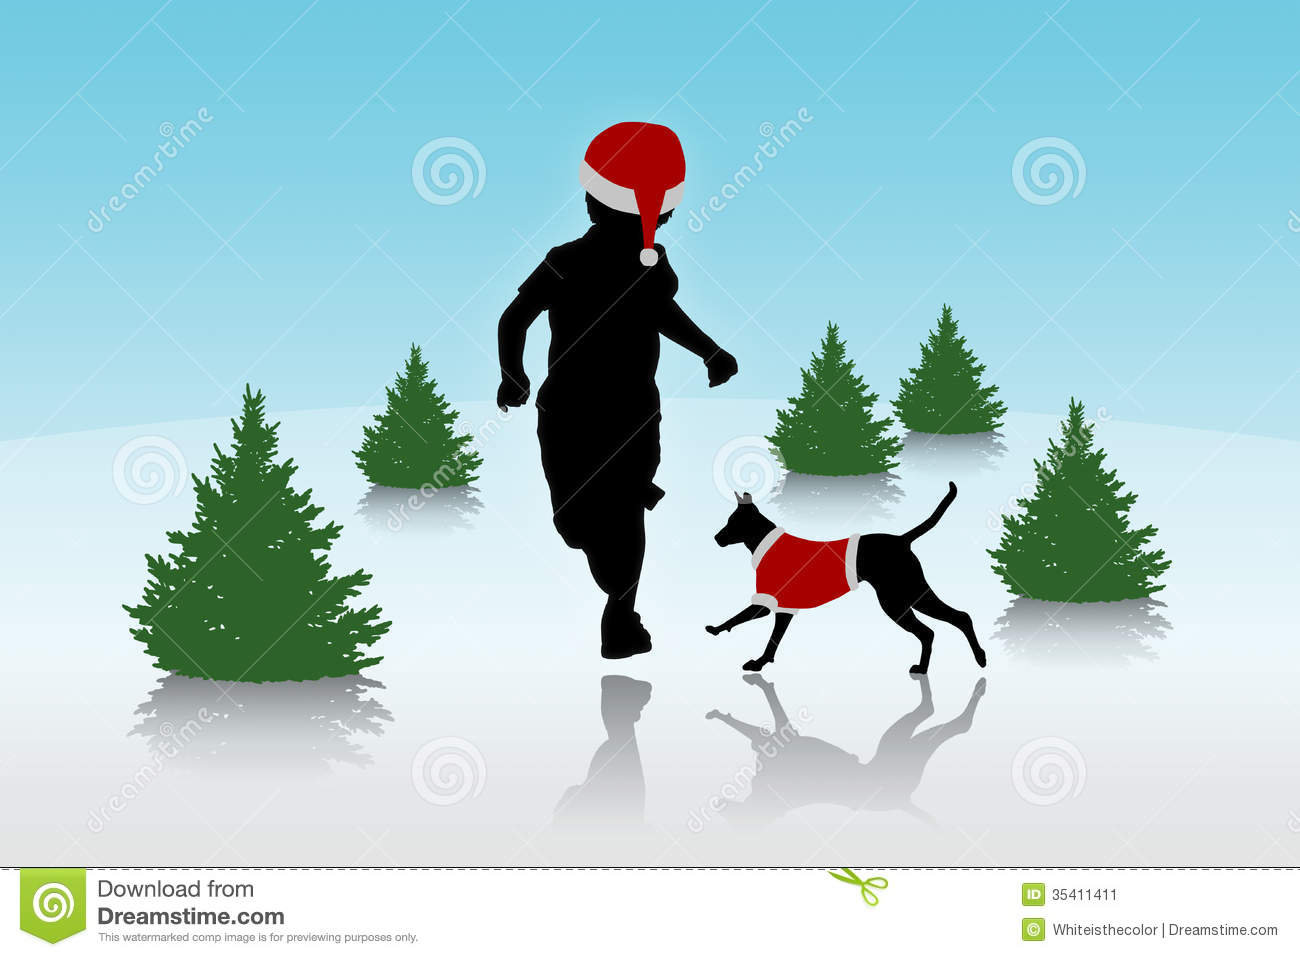 Christmas Running Top.Little Boy Running With A Dog On Christmas Background Stock